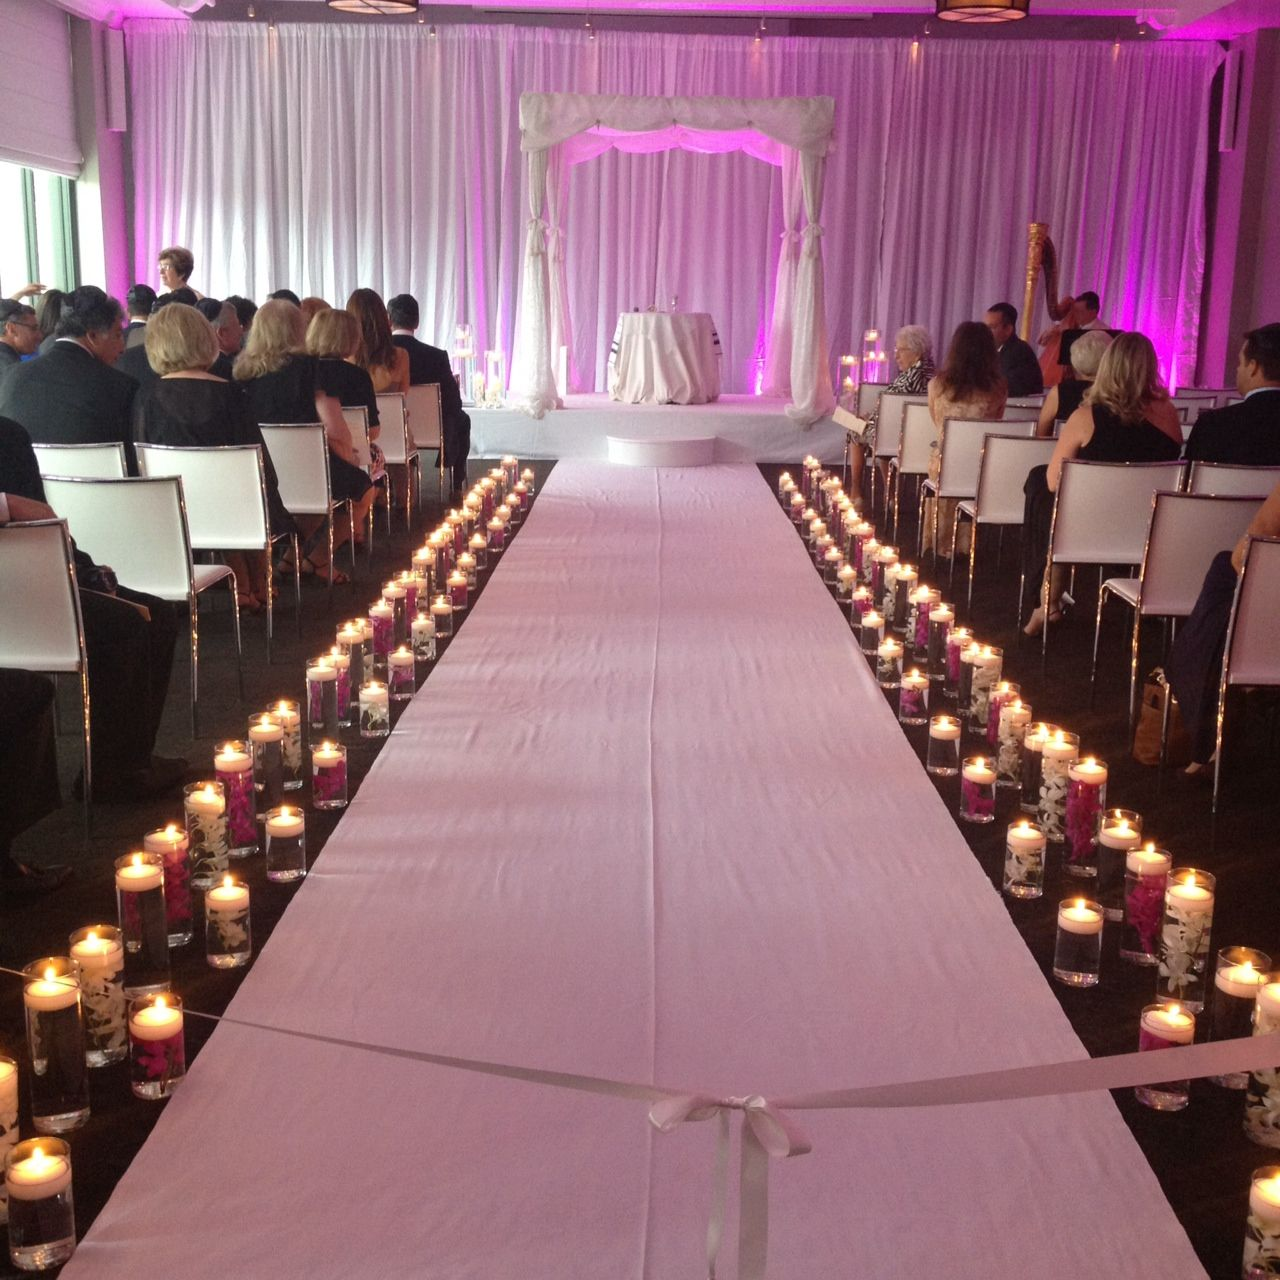 wedding ceremony decorations 29th, 2012 in ceremony Wedding Aisle Runner Decorations we had a gorgeous wedding at the w hotel a few weeks ago we did all of the flowers, aisle decor, aisle runner, step, stage cover and wedding coordination wedding aisle runner decorations